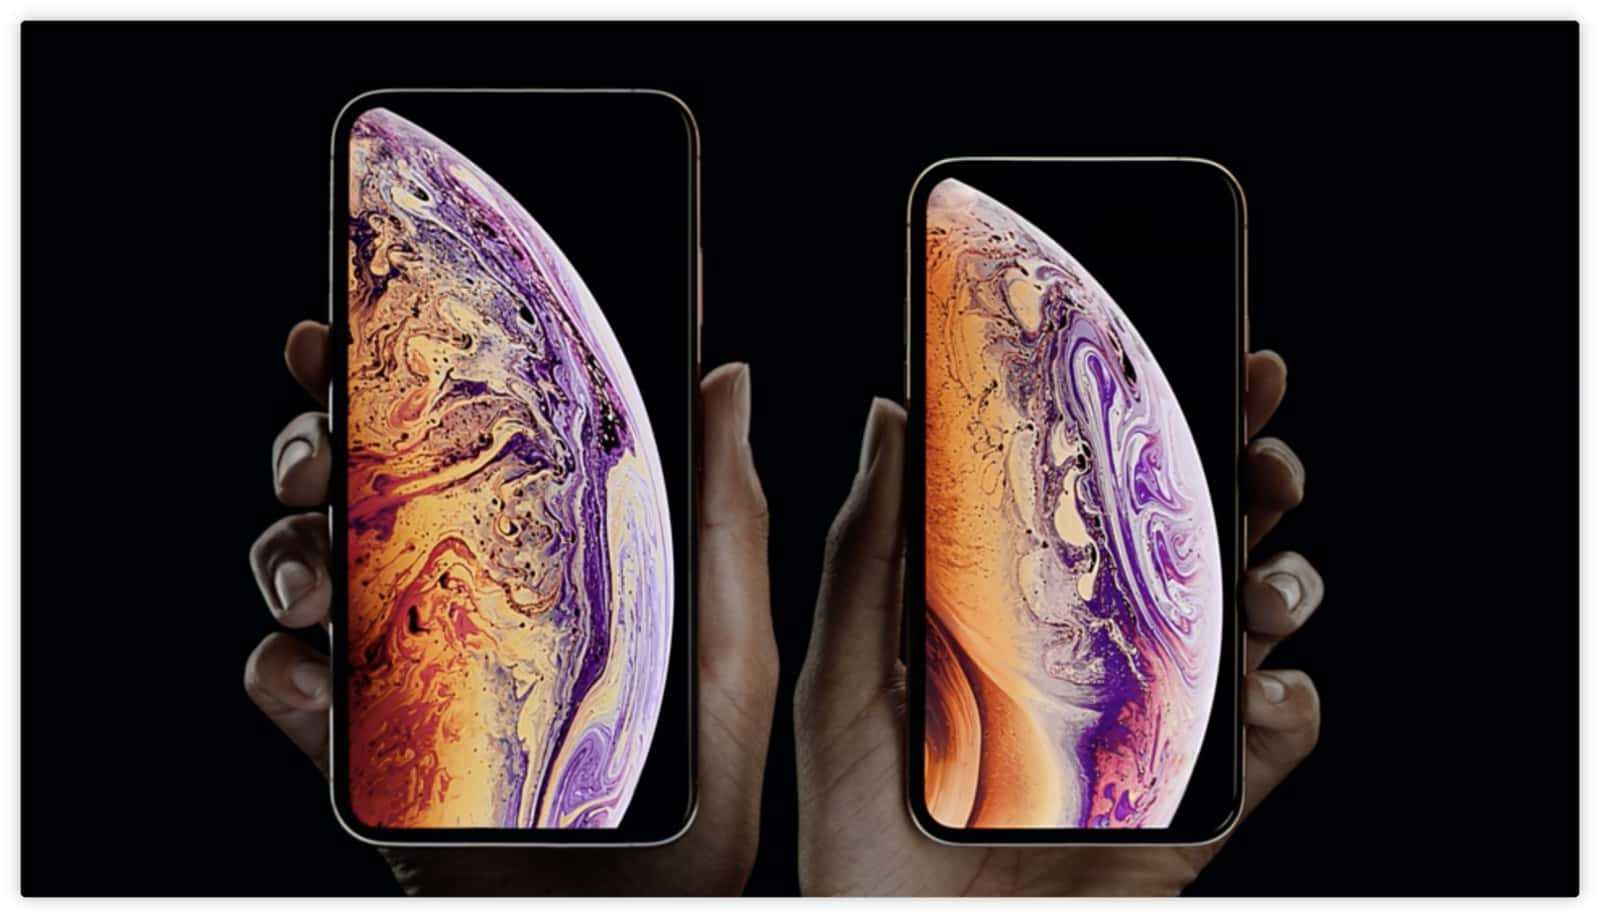 iphone-xs-iphone-xs-disadvantages-problems-pros-cons